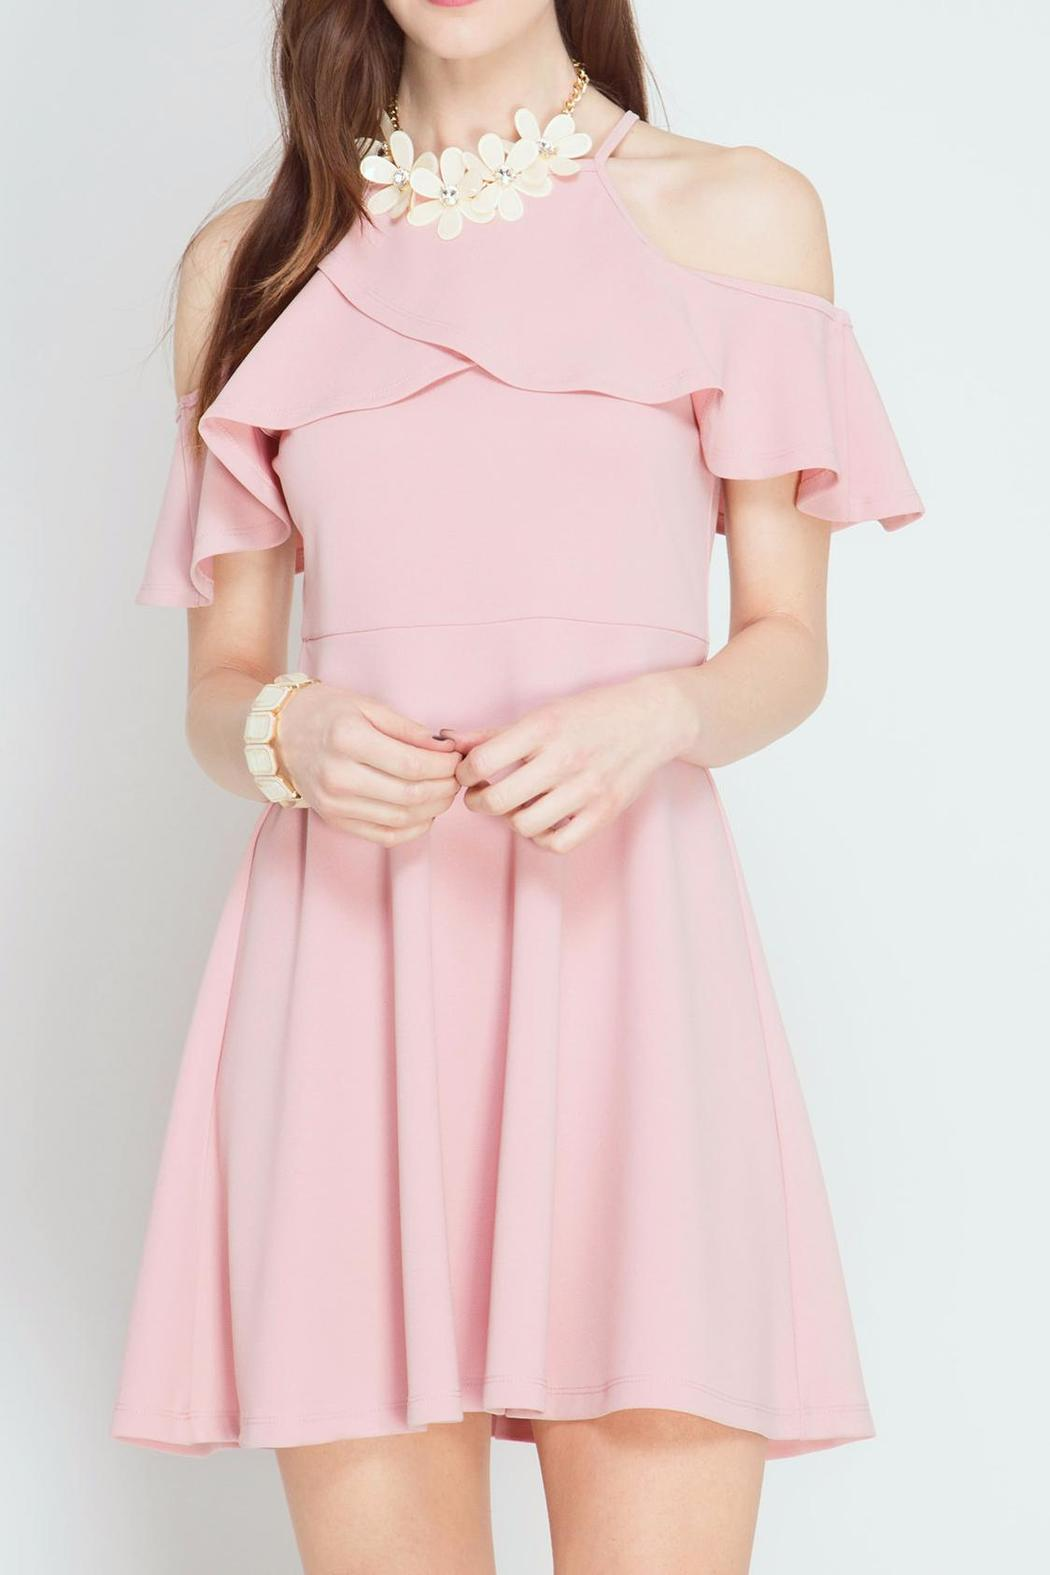 She + Sky Pink Petal Dress - Main Image